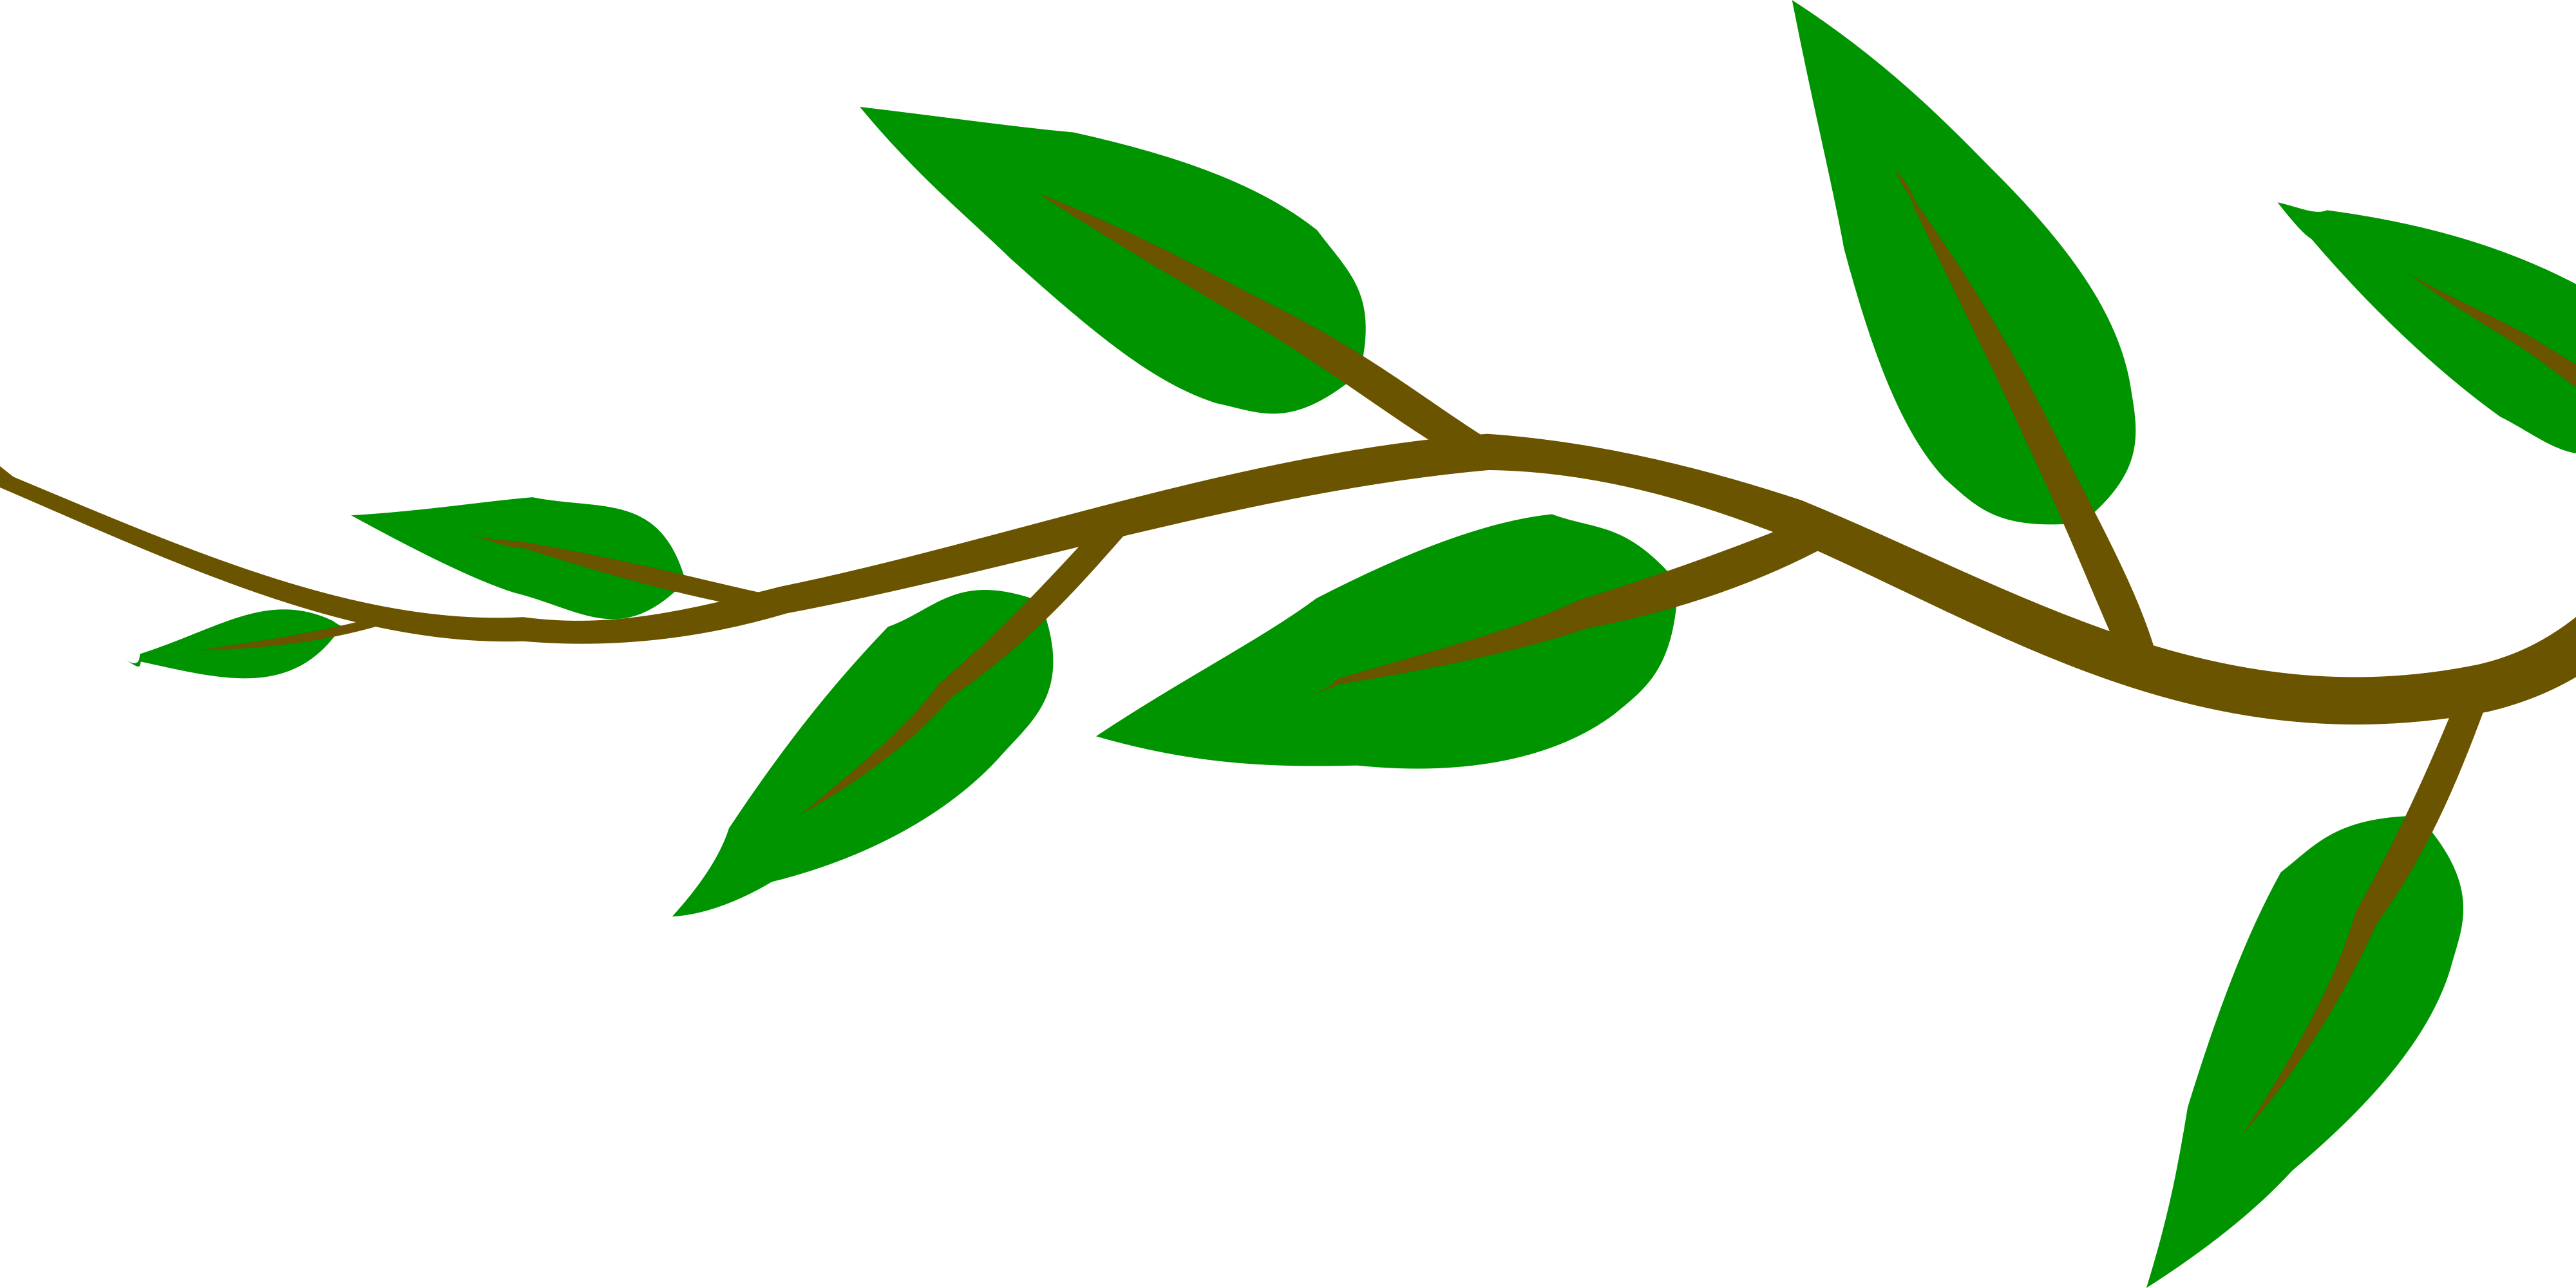 Environment clipart short tree. Small branch with green